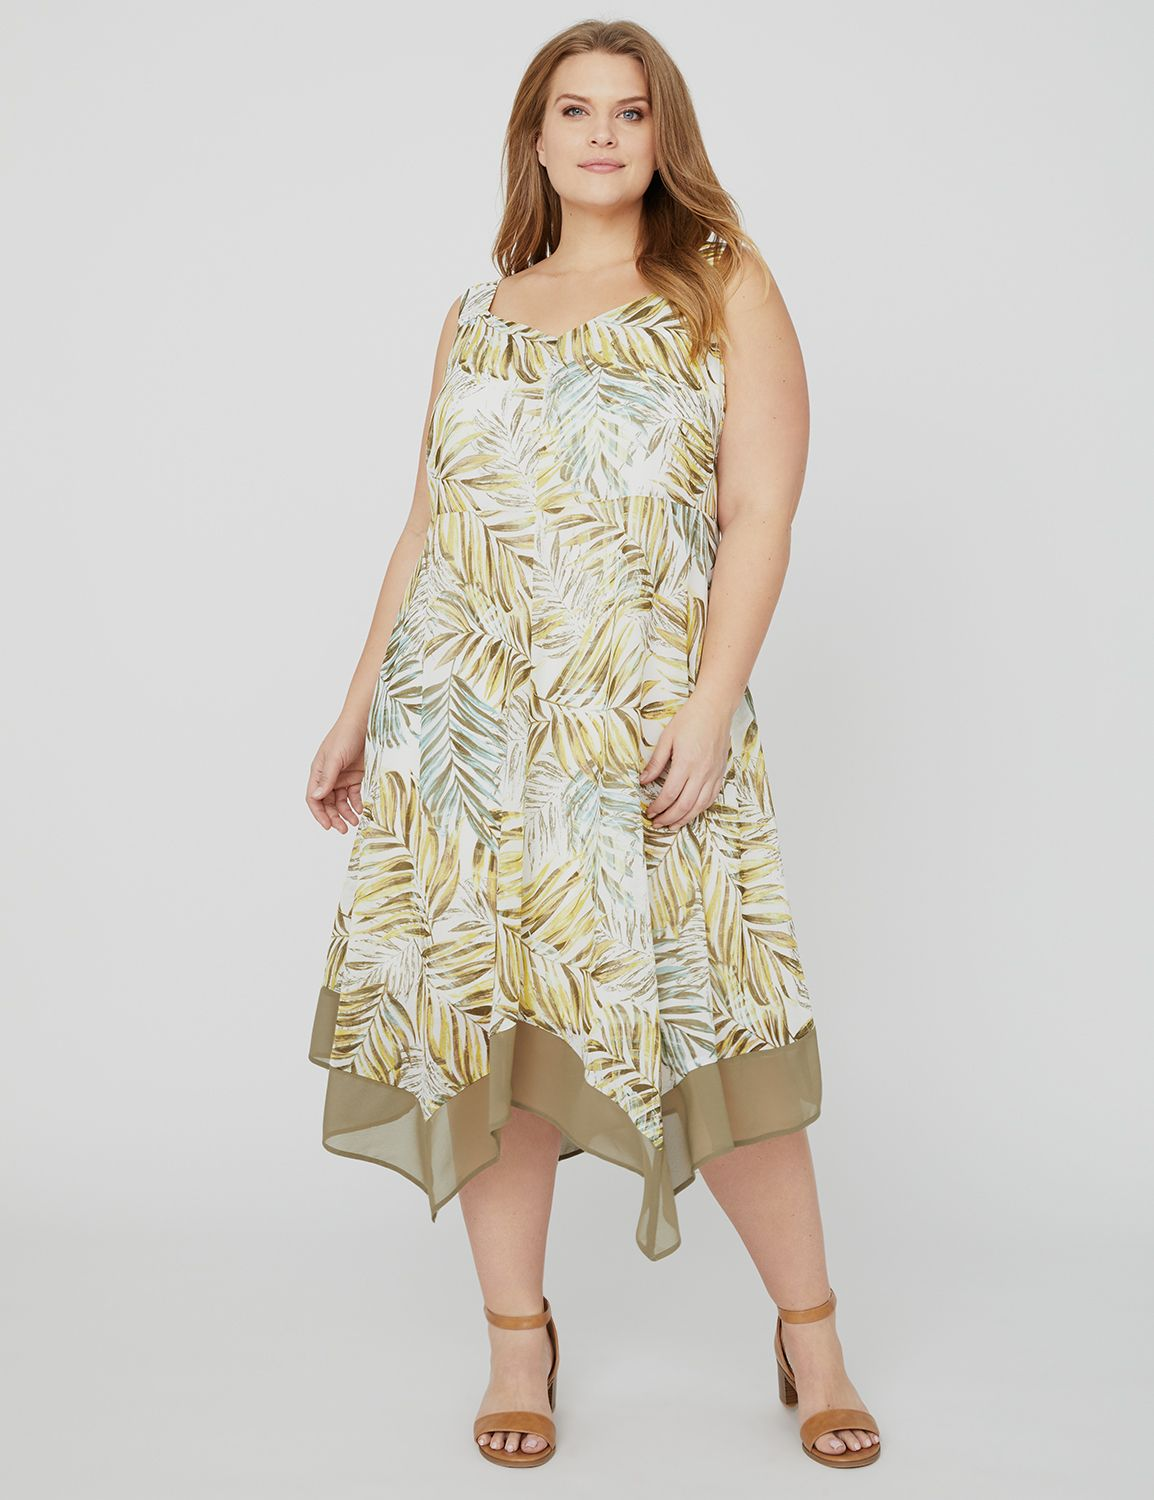 Greenwood Imprint Dress with Hankerchief Hem 1089938 Printed HANKY HEM DRESS wit MP-300102443